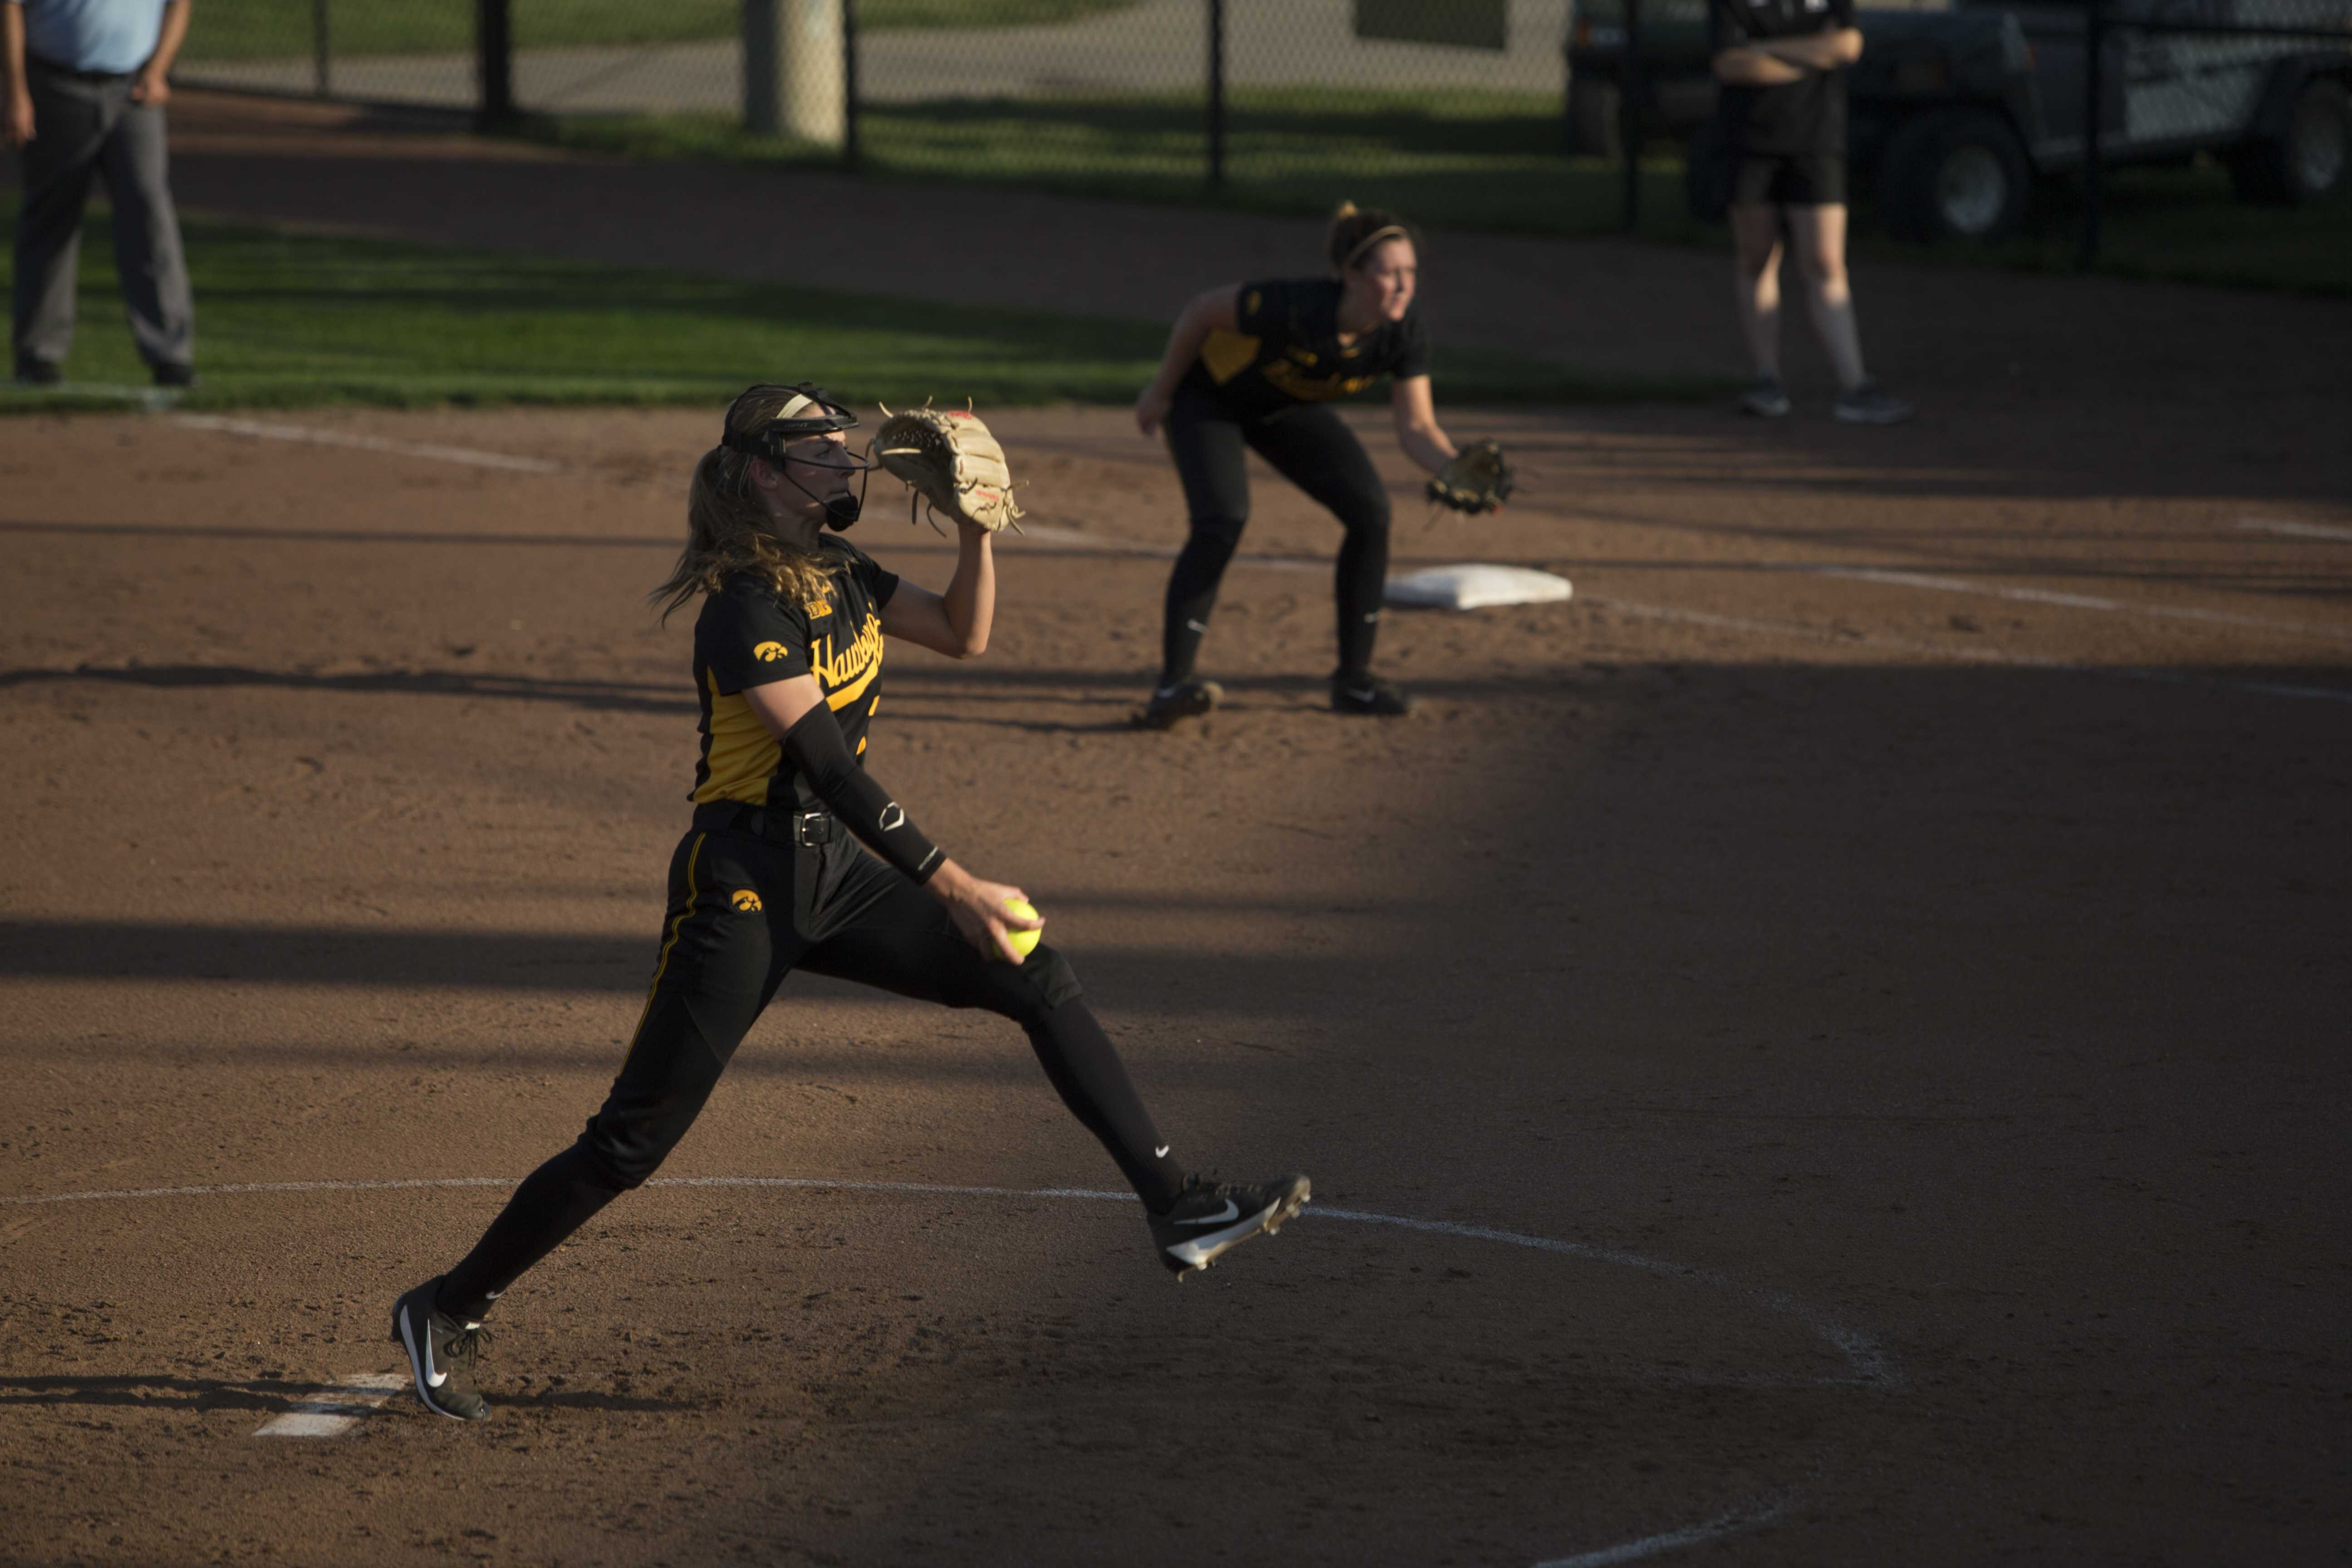 Iowa's Allison Doocy pitches for the Hawks at the Pearl Field Hawkeye Softball complex on Friday, Sept. 22, 2017. Hawkeyes defeated Kirkwood Community College 5-3. (Ashley Morris/The Daily Iowan)